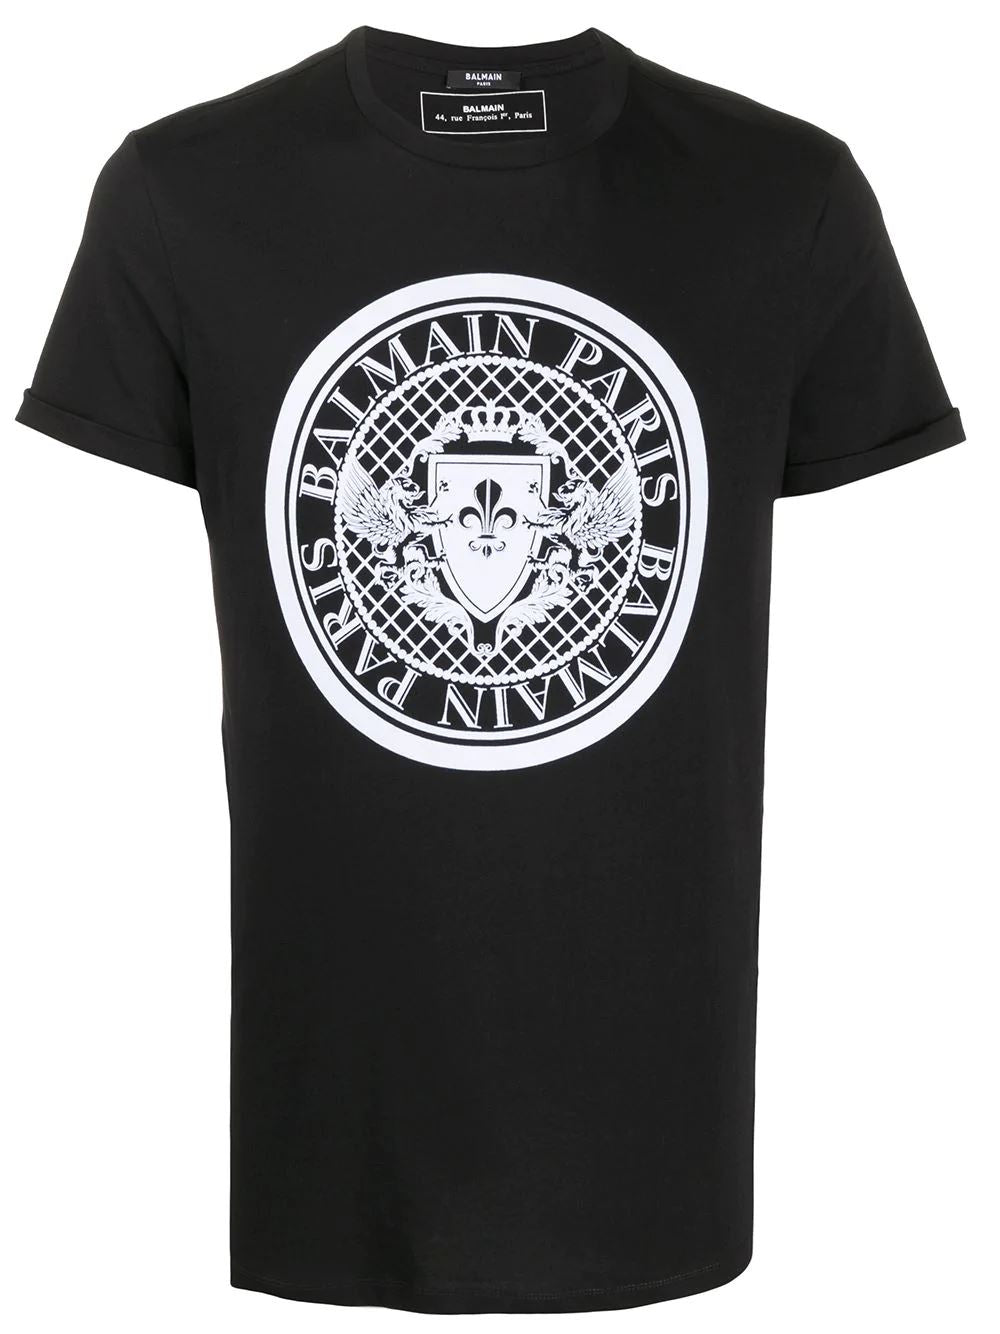 BALMAIN medallion print t-shirt black - Maison De Fashion